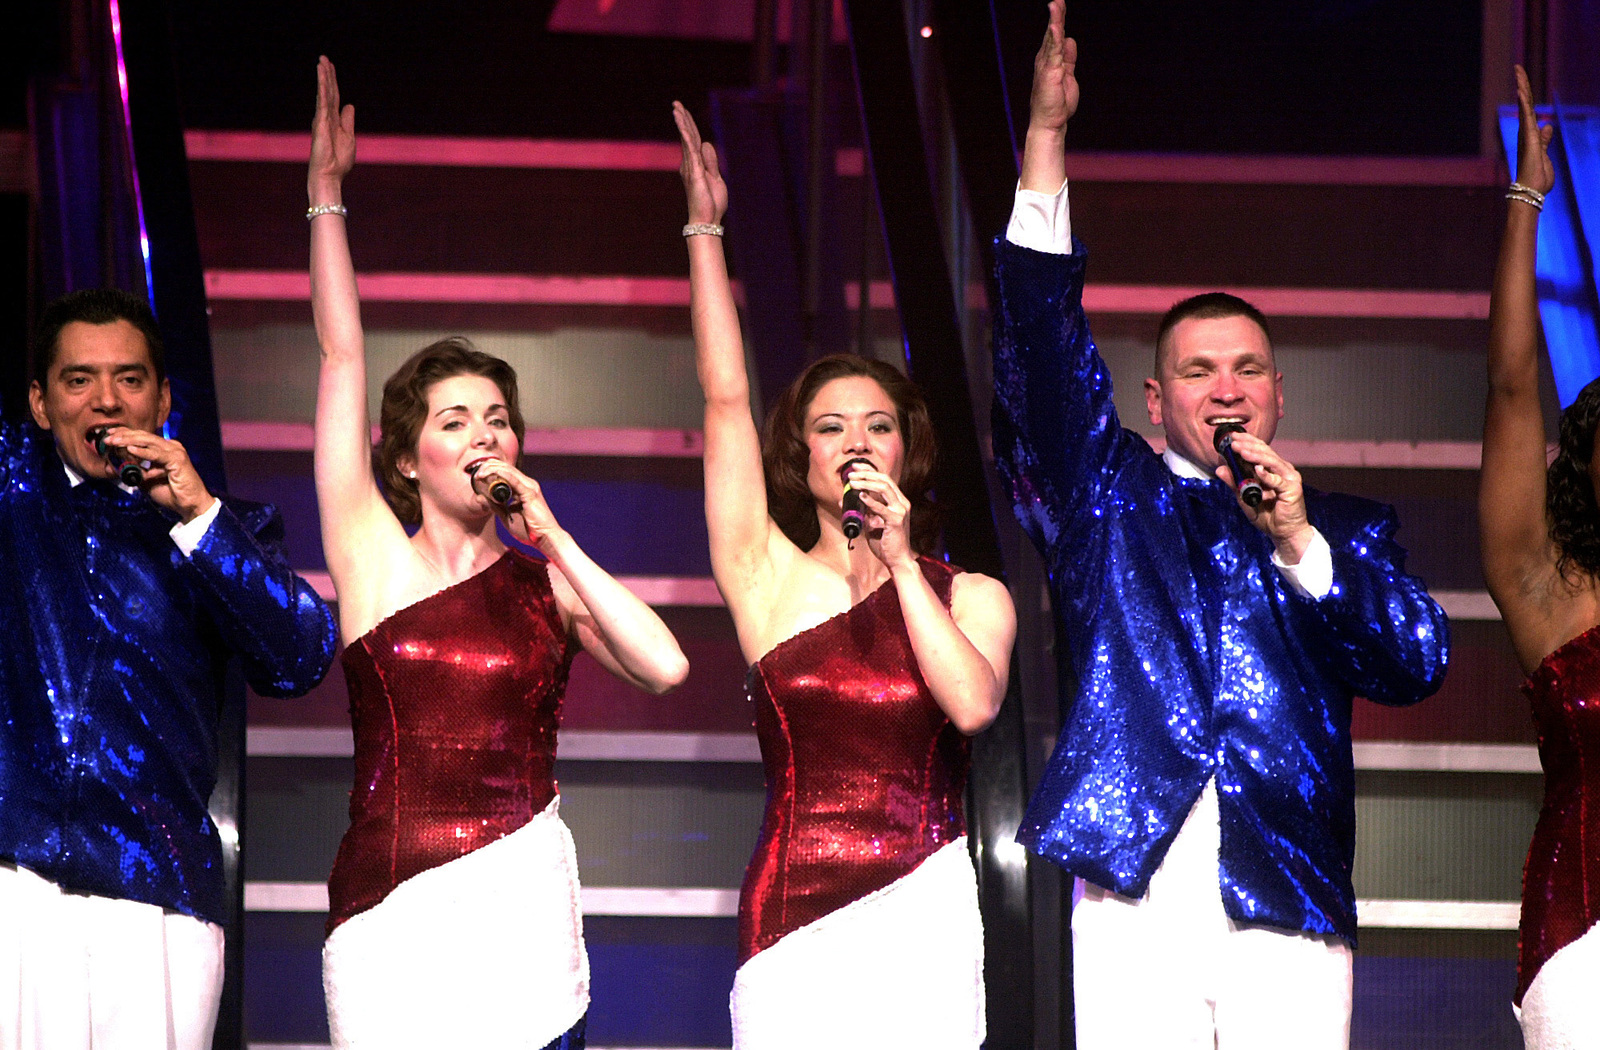 """From the left, US Air Force (USAF) Technical Sergeant (TSGT) Max Hernandez, Jr., Captain (CAPT) Susan Neidlinger, AIRMAN First Class (A1C) Angie Long, and MASTER Sergeant (MSGT) Bryan Langerud, perform the opening number """"American, I Still Can Hear Your Song"""" during a """"Tops In Blue"""" concert at Ramstein Air Base (AB), Germany"""